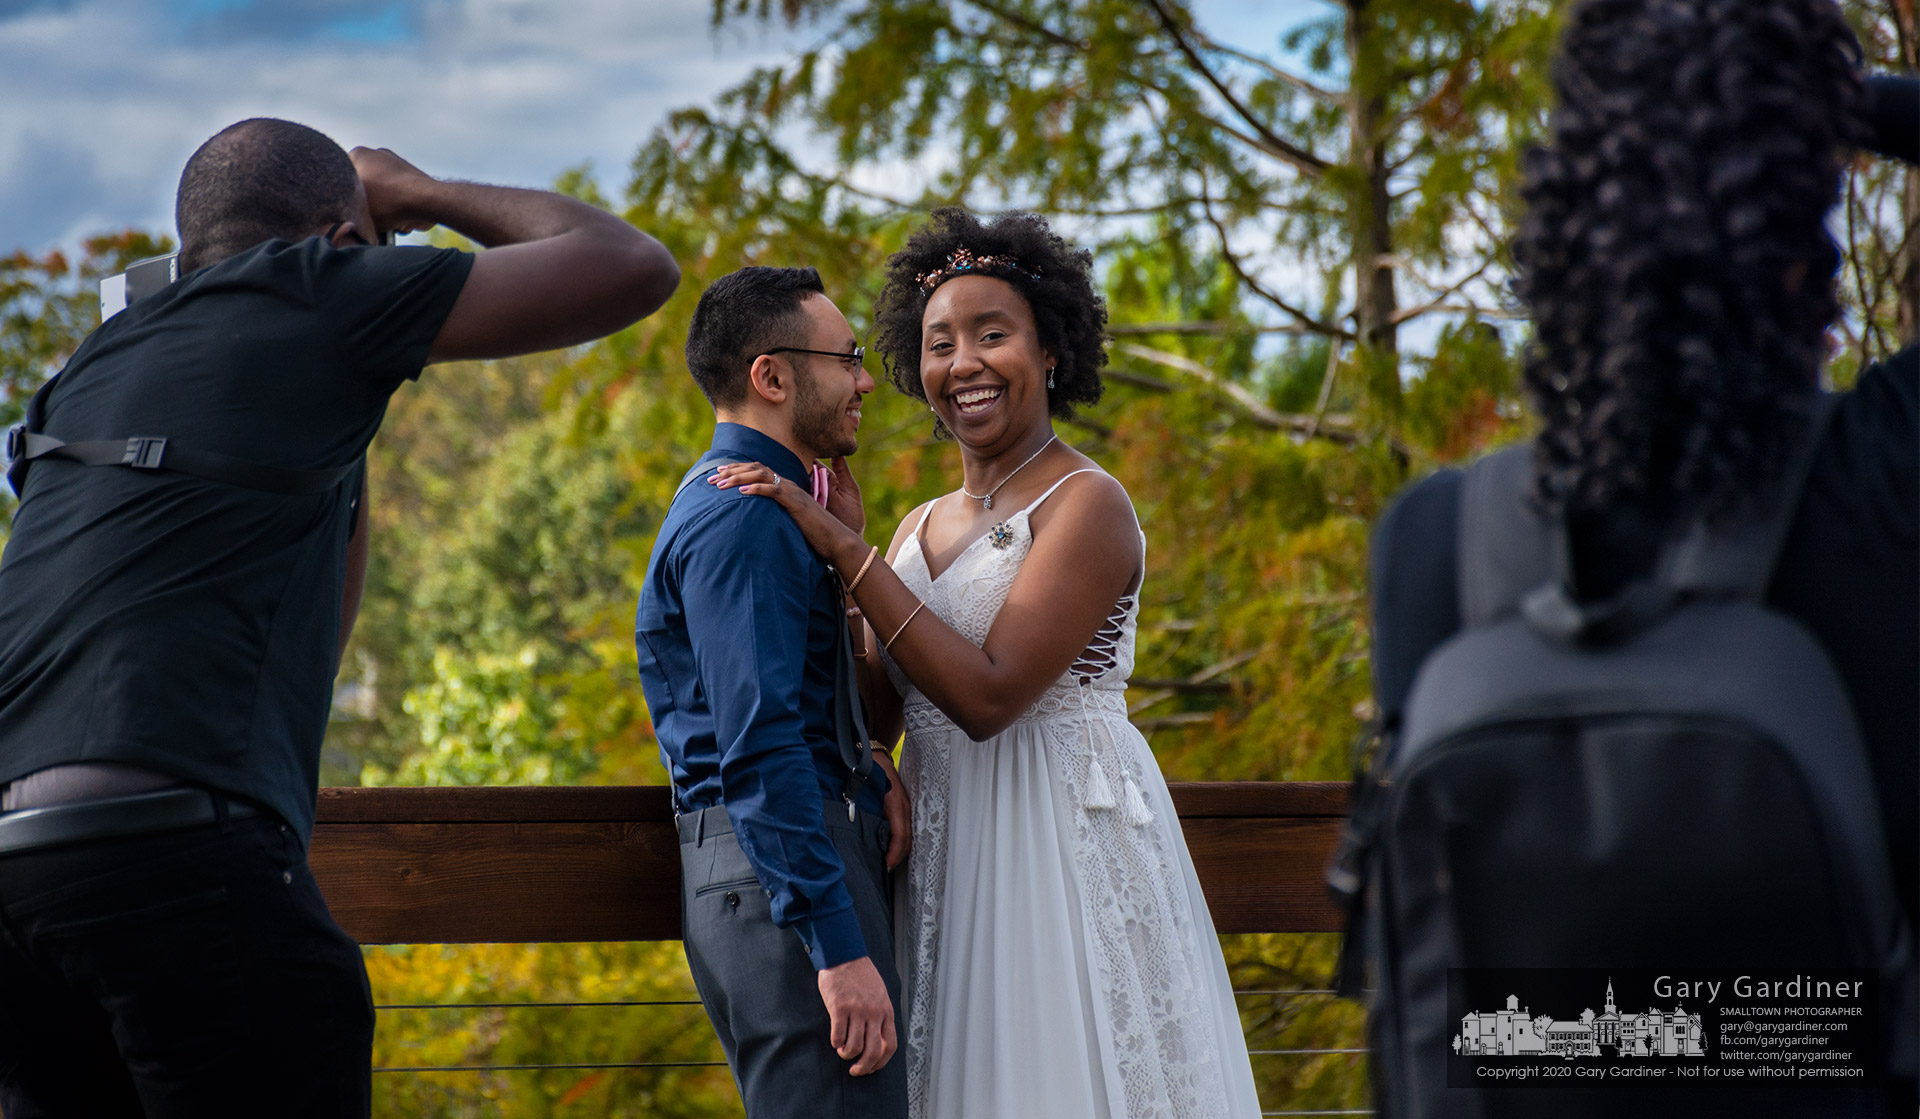 A newly married couple poses for photos along the wooden walkway at the Highlands Park wetlands where they and their families gathered following the afternoon wedding. My Family Photo for Oct. 2, 2020.